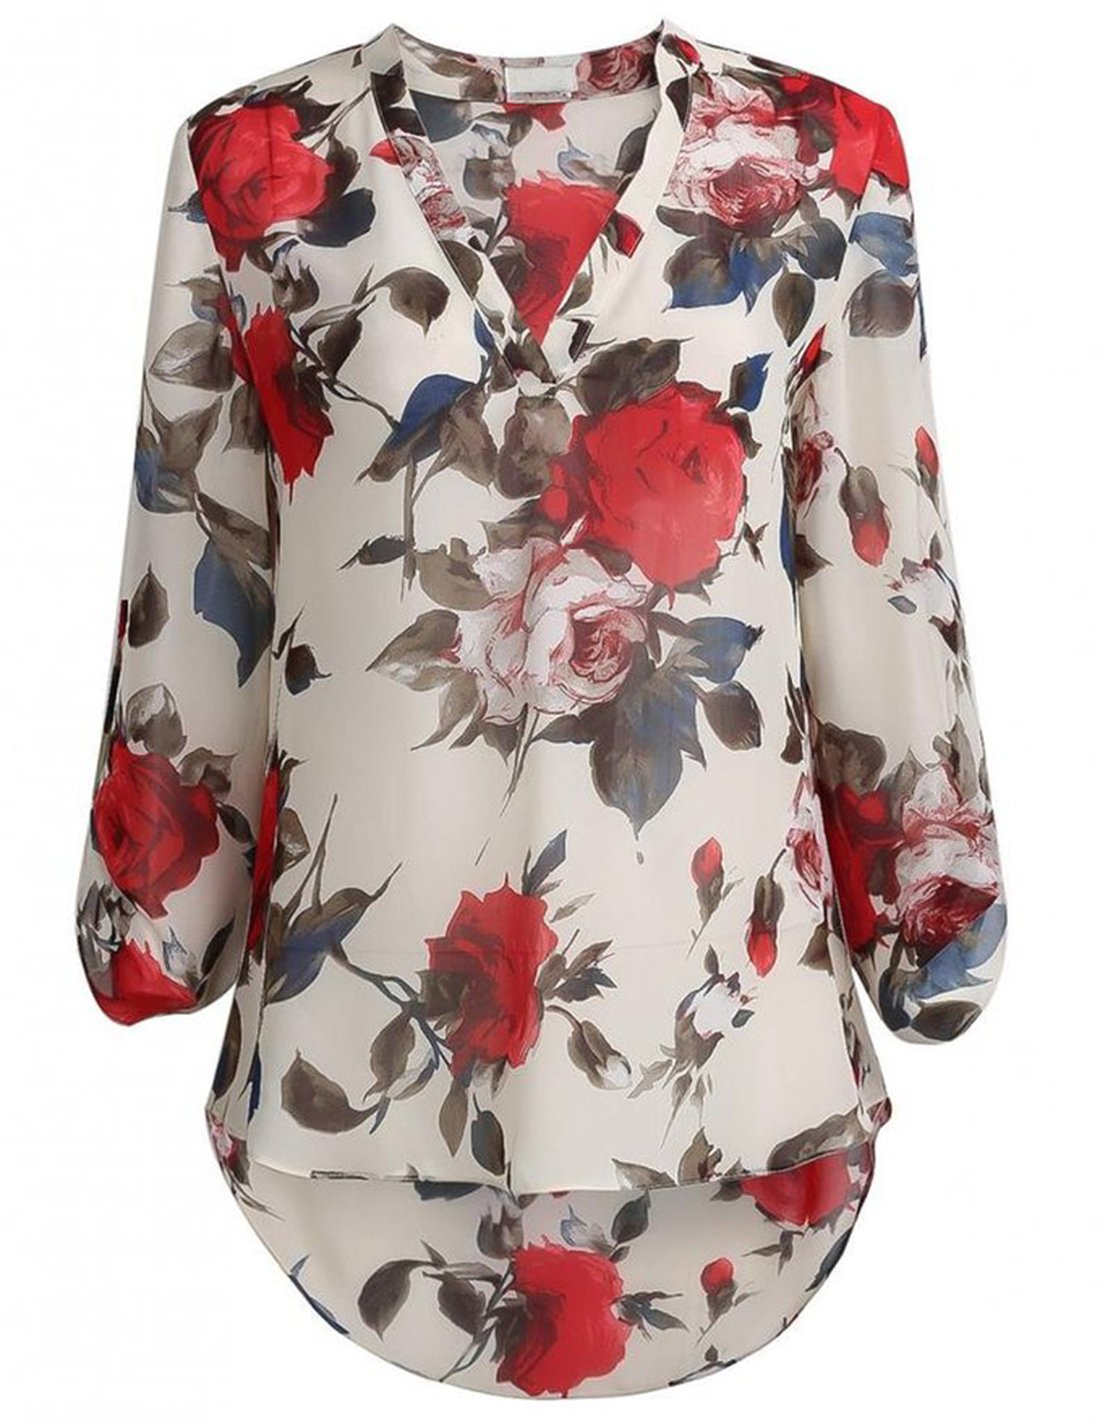 SheIn Women\'s Floral Printed V Neck High Low Hem Cuffed Sleeves Blouse - Multicolor Large